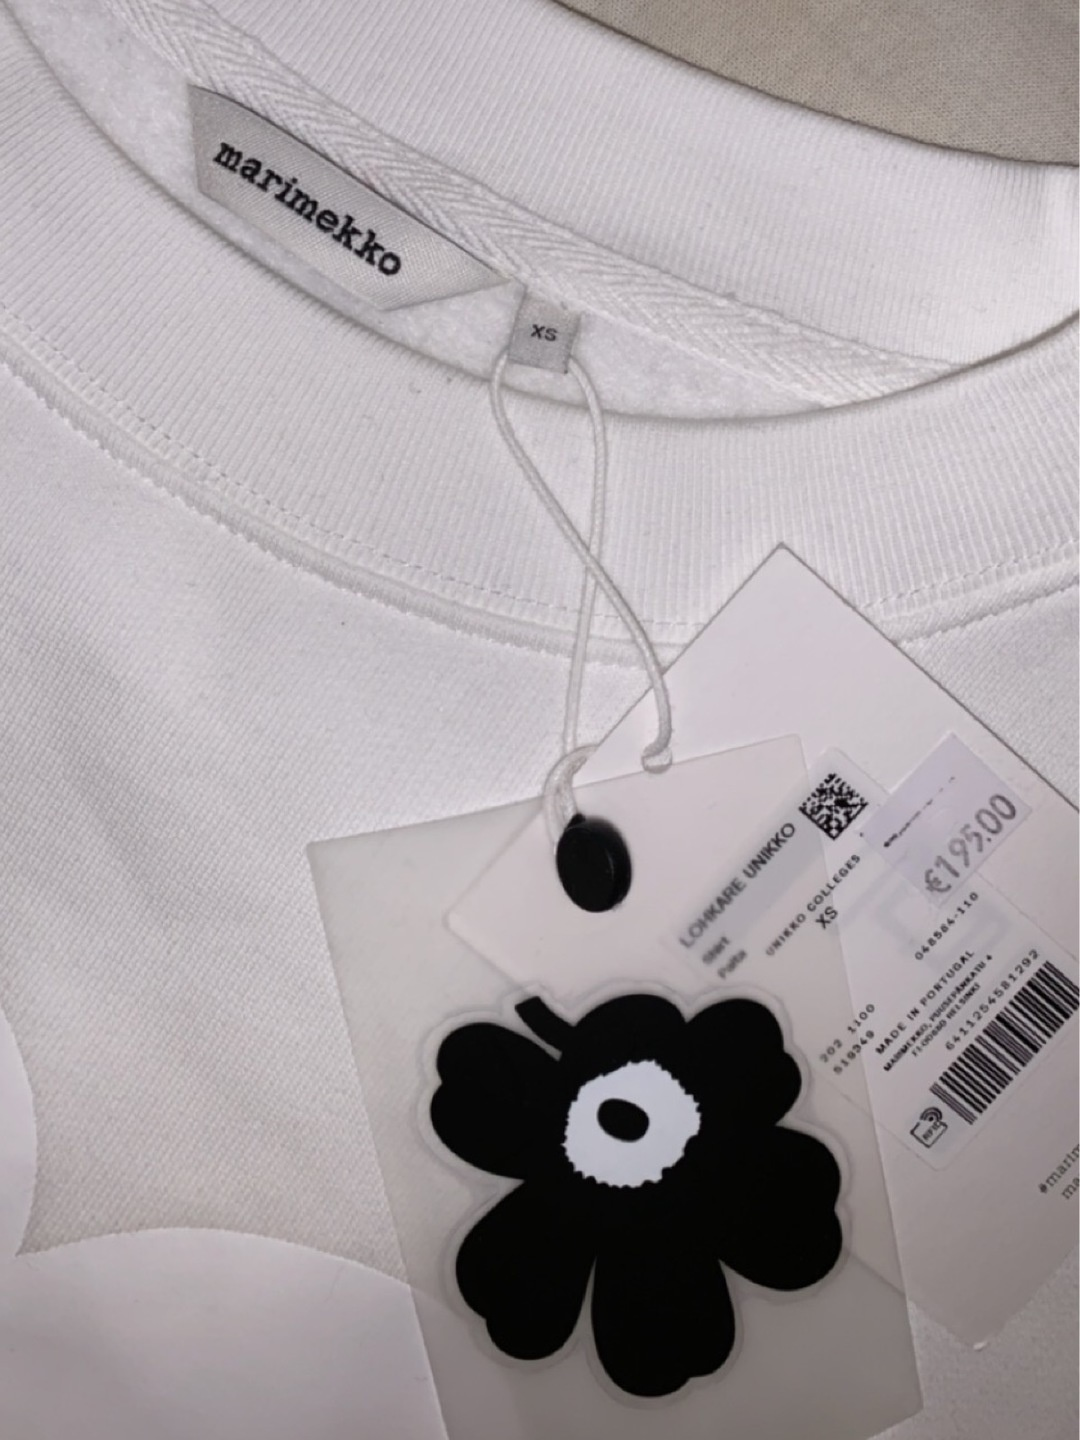 Women's hoodies & sweatshirts - MARIMEKKO photo 3